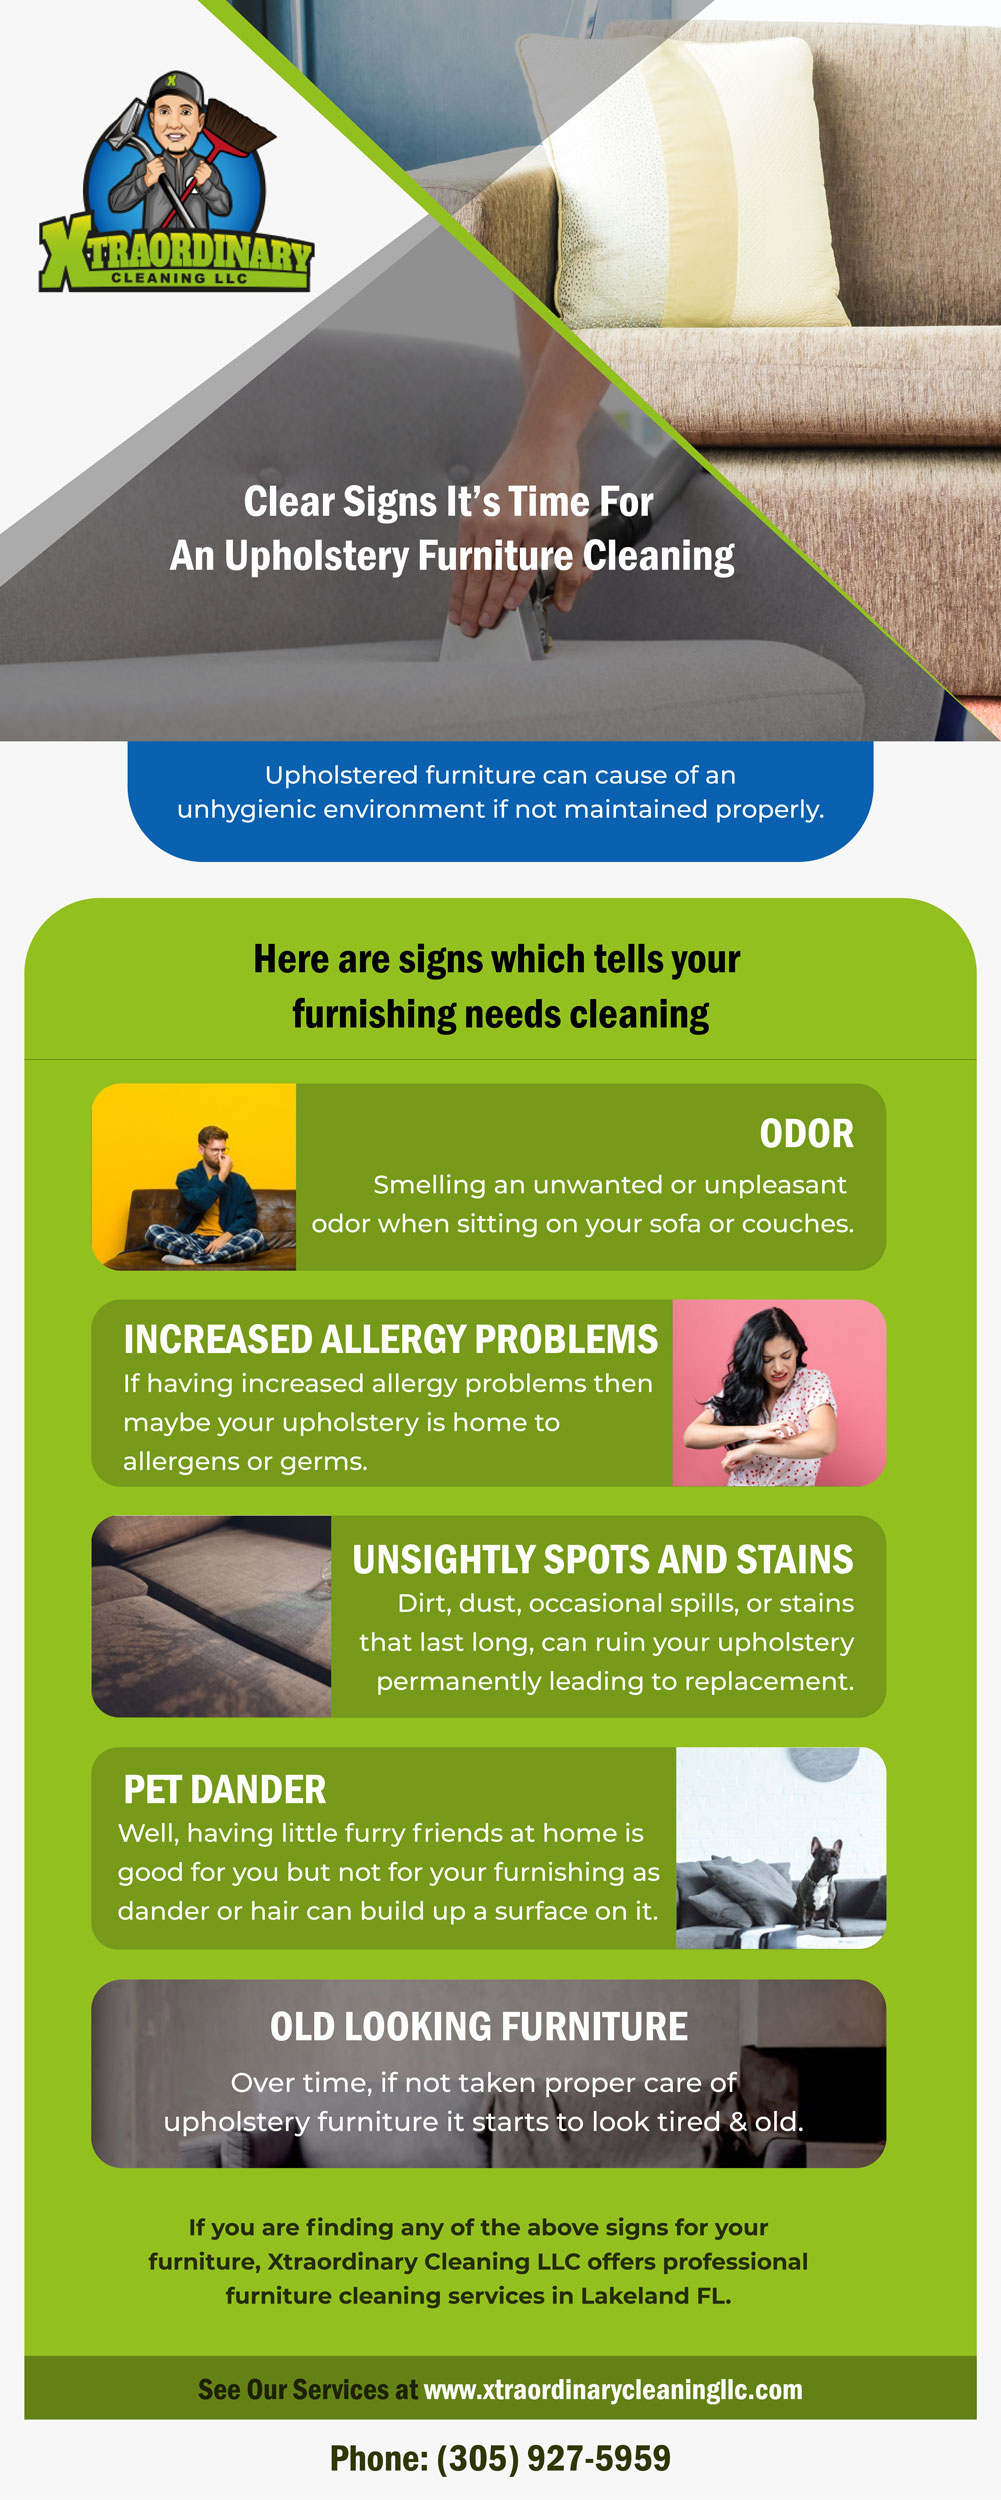 Clear Signs It's Time For An Upholstery Furniture Cleaning